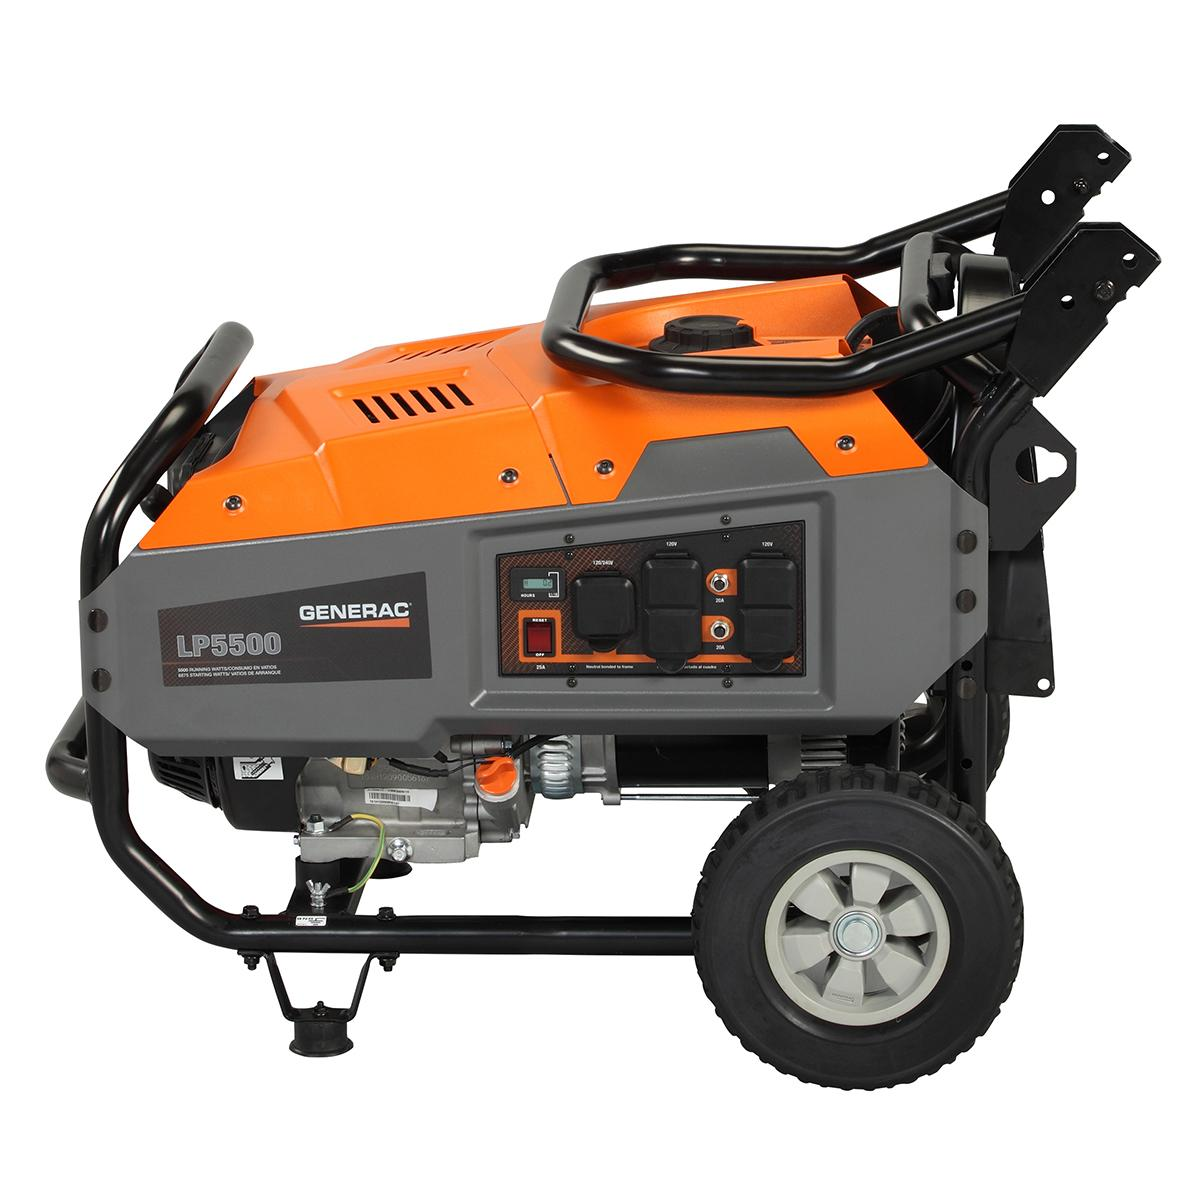 Generac 6001, 5500 Running Watts/6875 Starting Watts, Propane Powered  Portable Generator, CARB Compliant (Discontinued by Manufacturer)